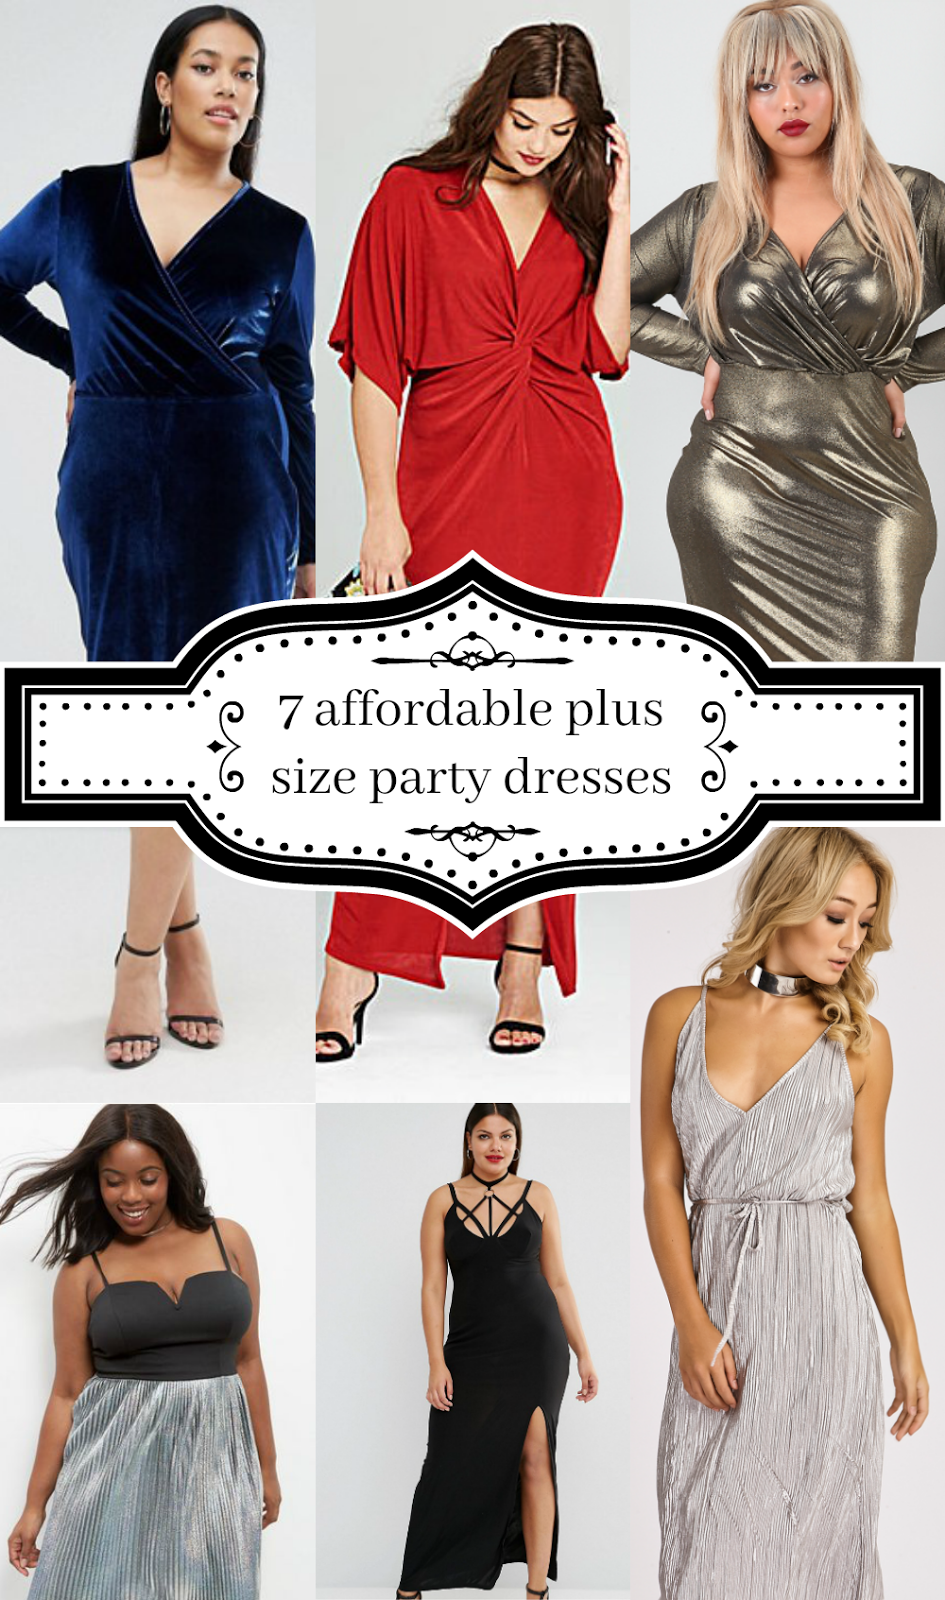 6a99888bce 7 affordable plus size party dresses - Love Leah